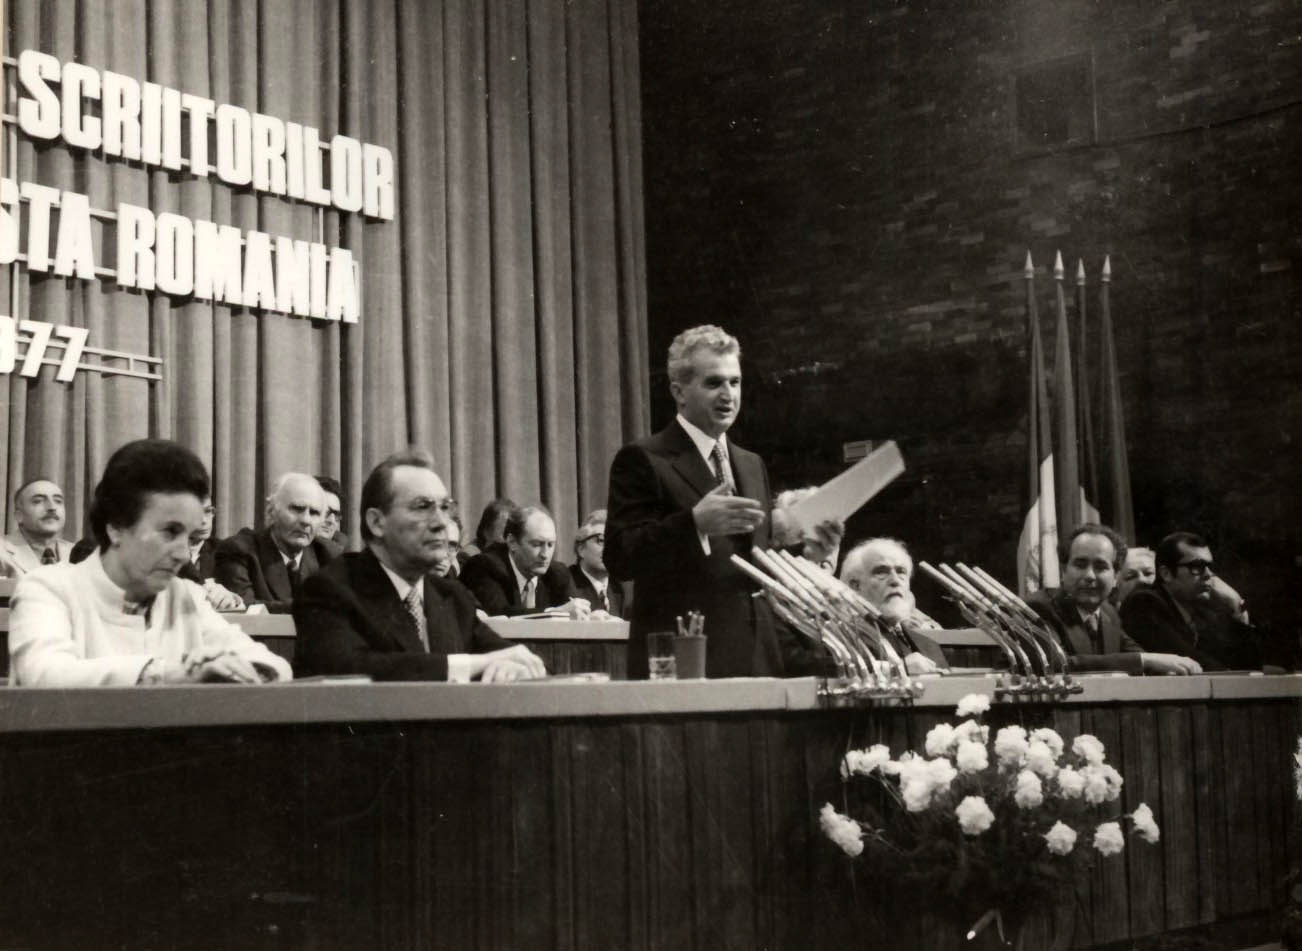 Nicolae Ceaușescu speaking at Writers' National Conference, Bucharest, 26 May 1977